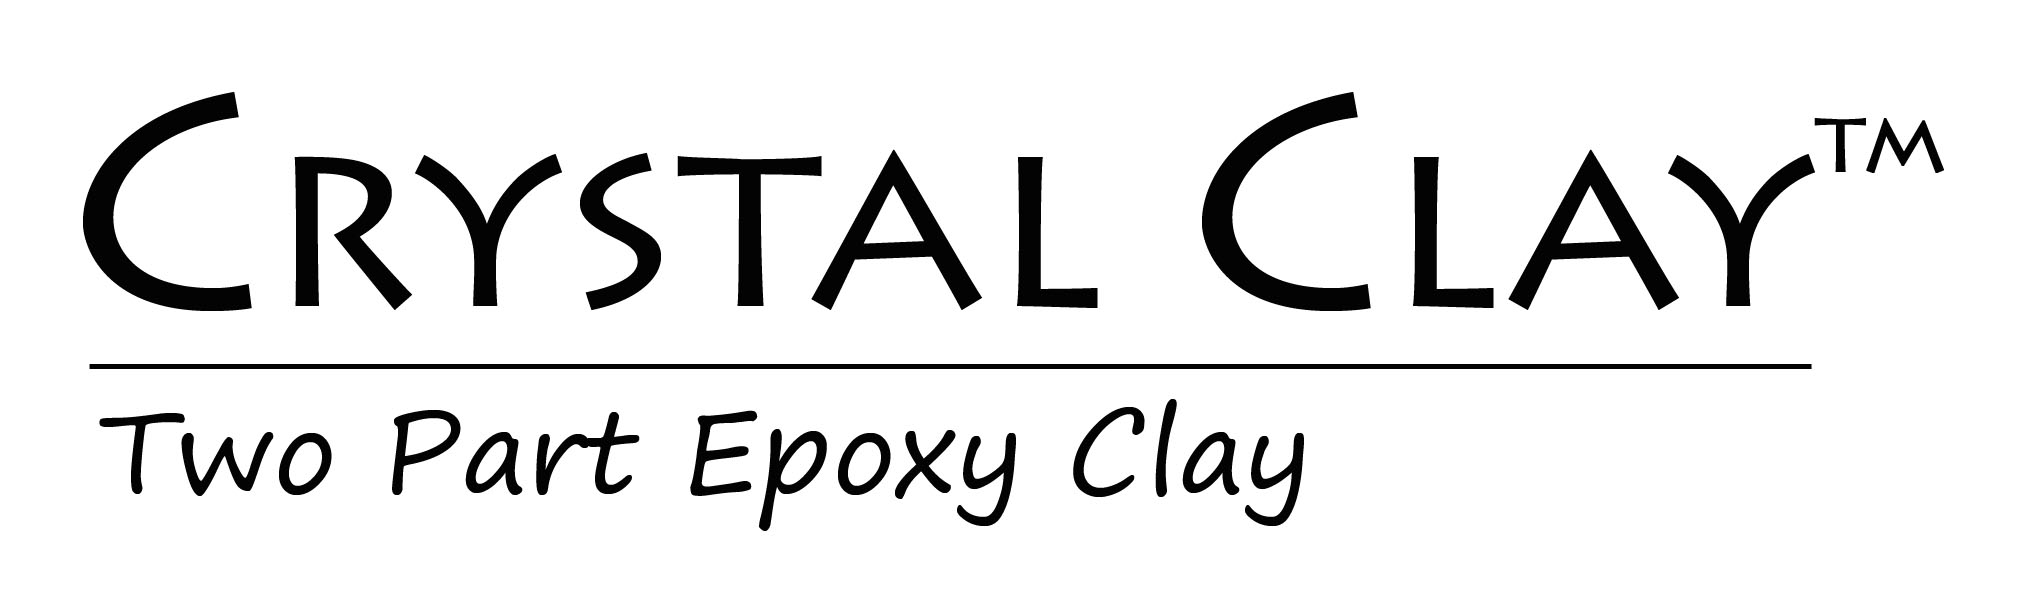 Crystal Clay 2 part epoxy clay for making rings and pendants